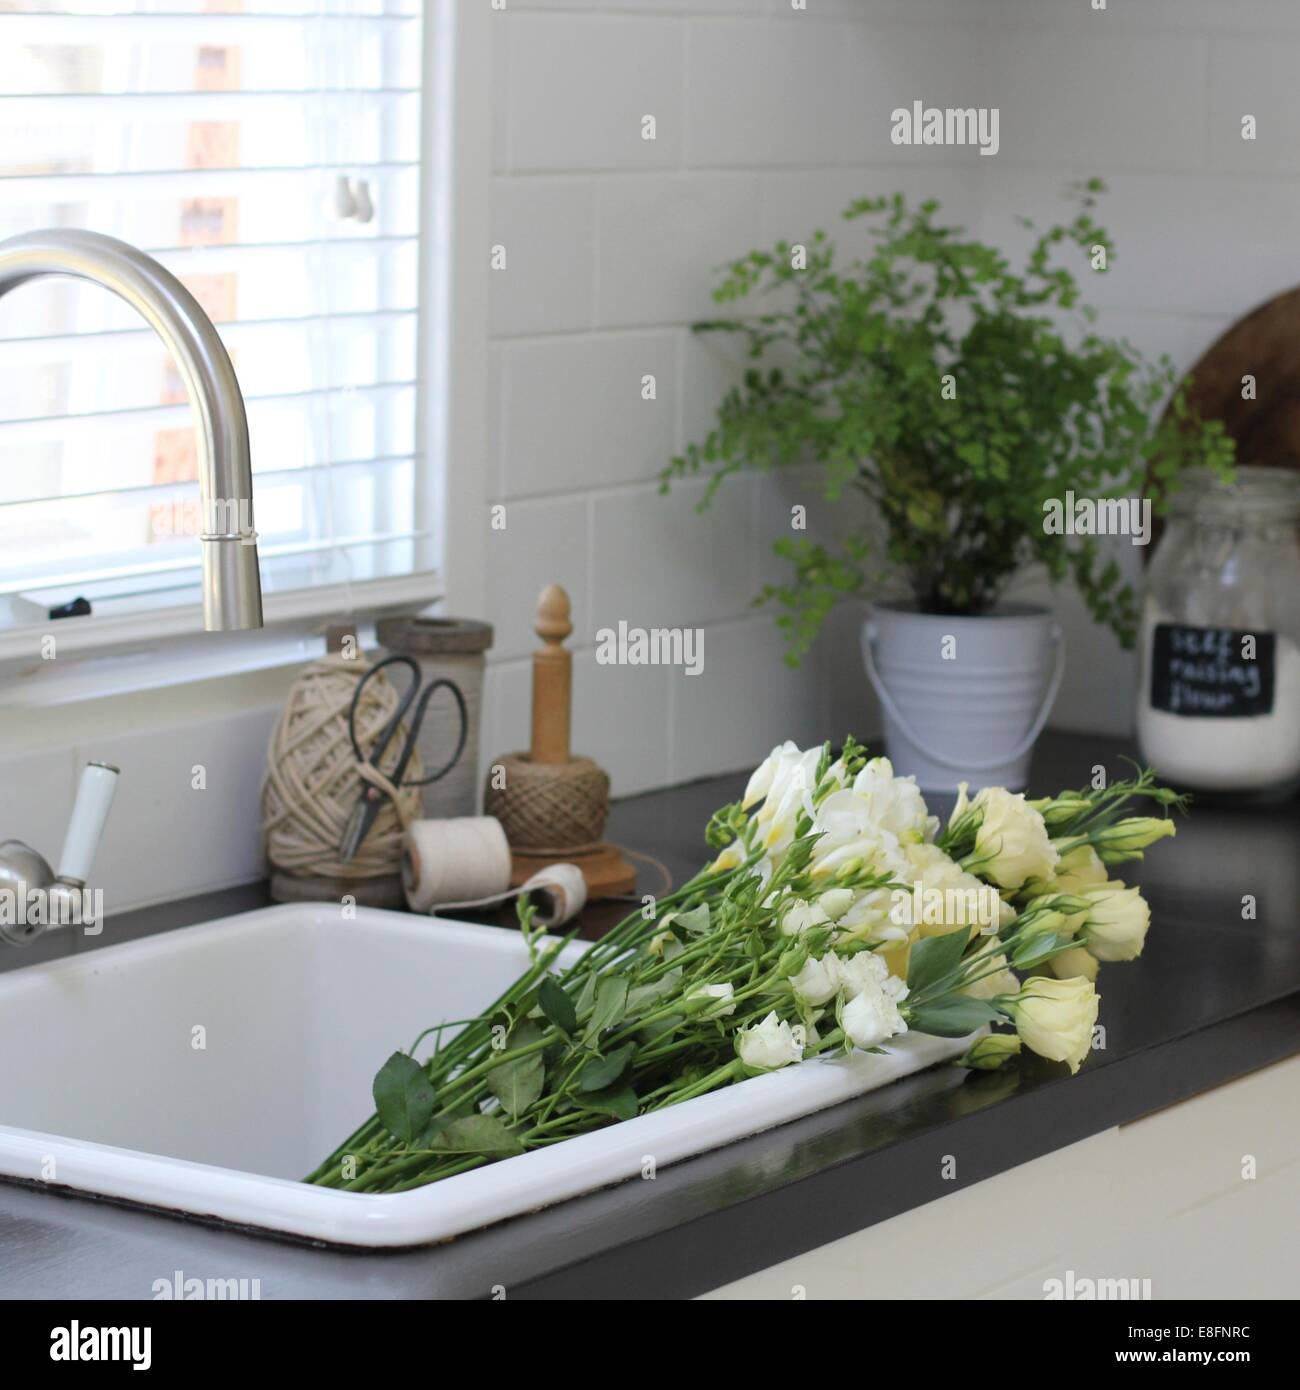 Bunch of flowers in kitchen sink - Stock Image